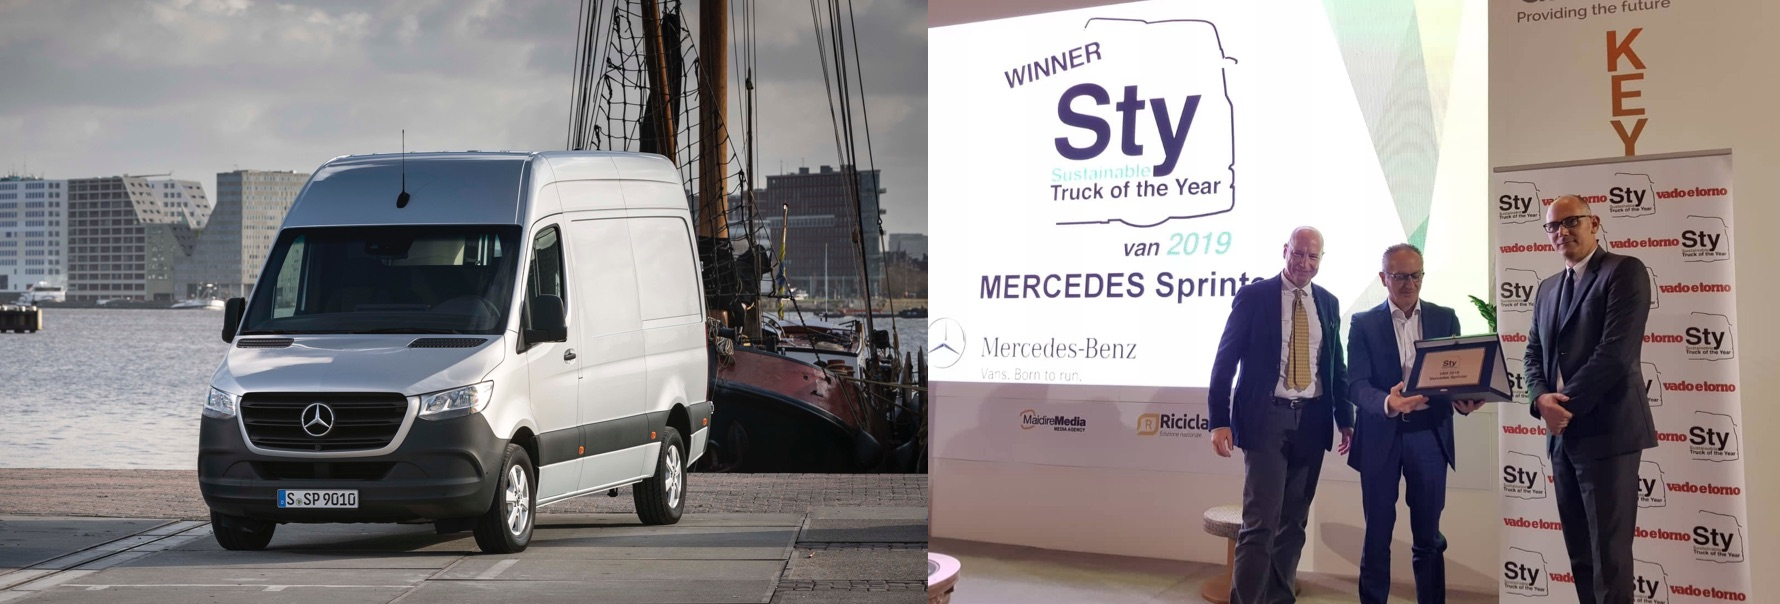 STY 'VAN 2019': Mercedes Sprinter